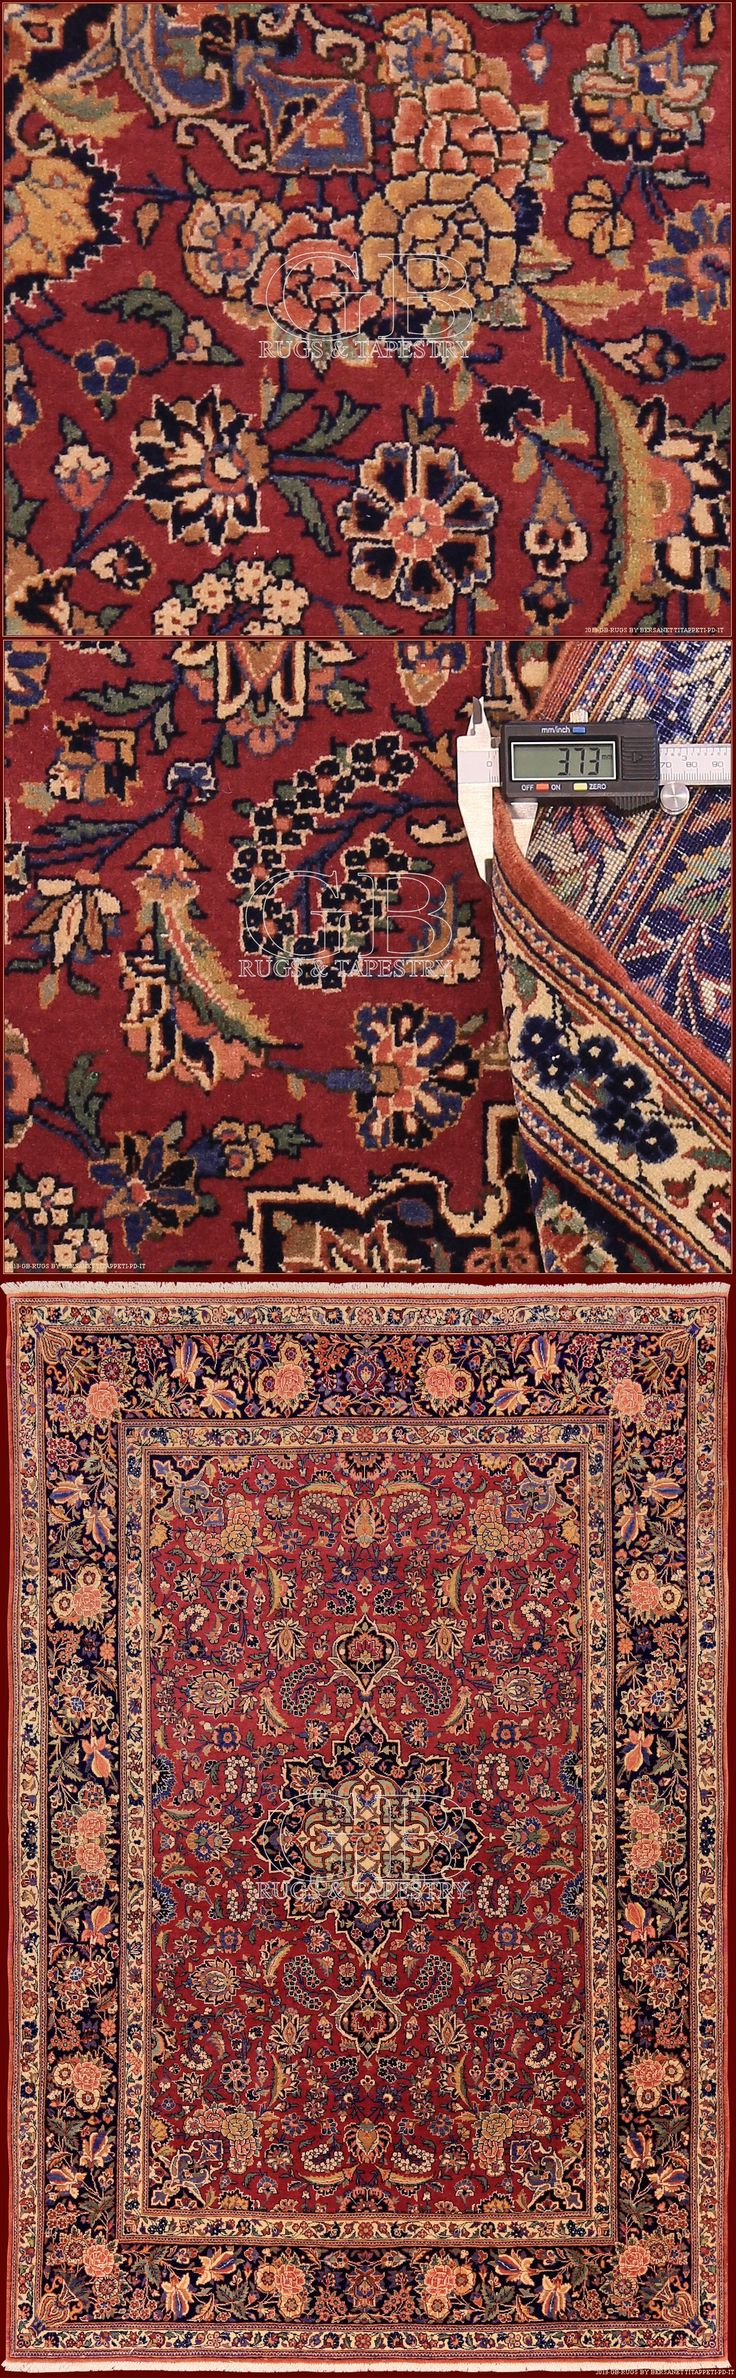 KASHAN_RUGS cm 205 x 139ft 6'7 x 4'6 Cod:: 141406560770 City of central Iran, important for the production of rugs until the Safavid period. The dominant colors of these rugs are the blue and the red, gotten by the cochineal.